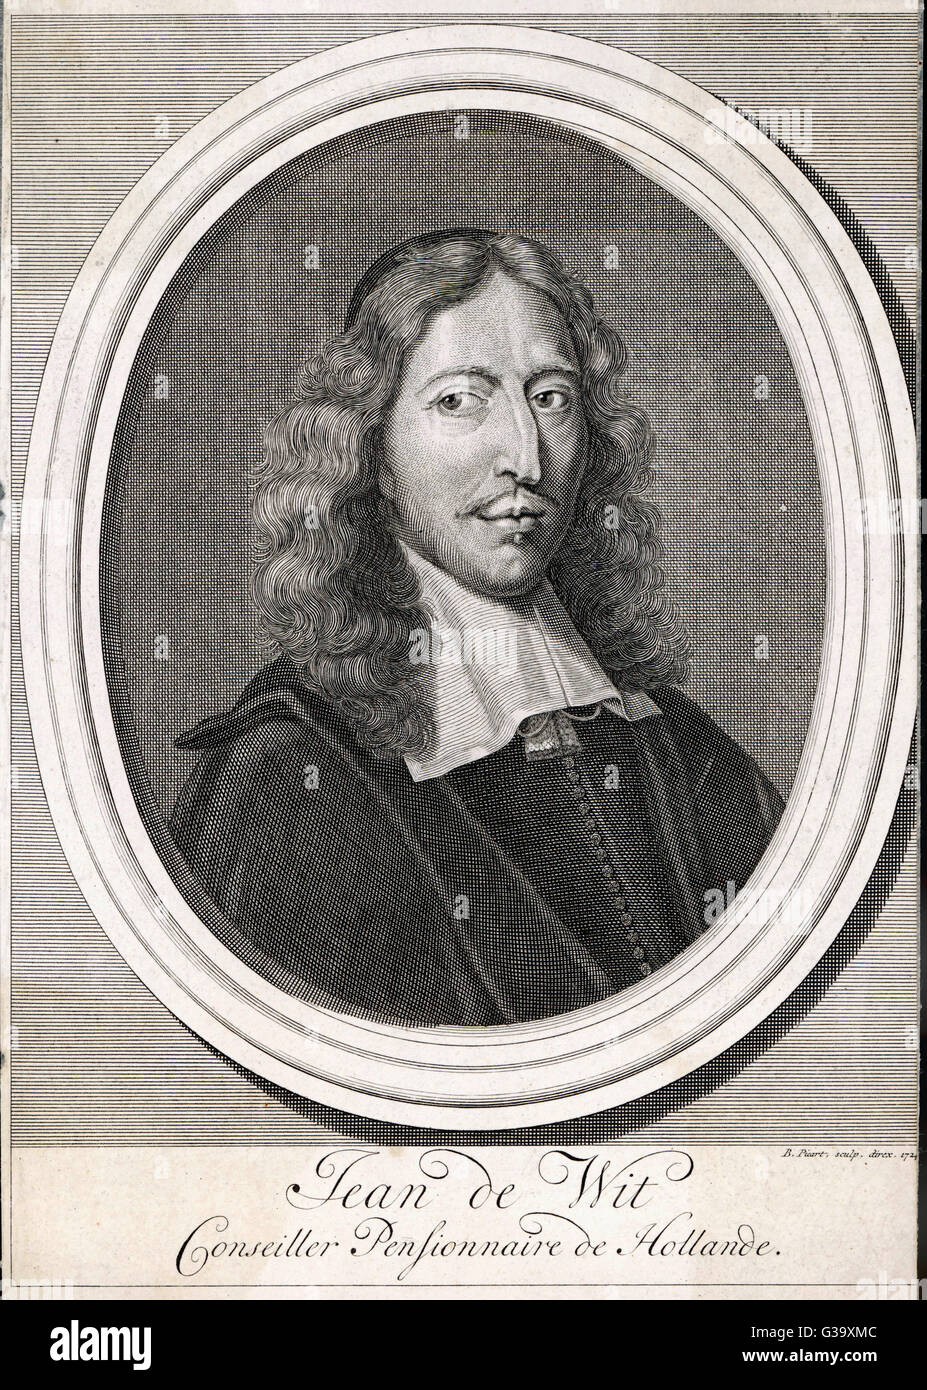 JOHAN DE WITT Dutch statesman, Grand  Pensionary, killed by a mob        Date: 1625 - 1672 - Stock Image